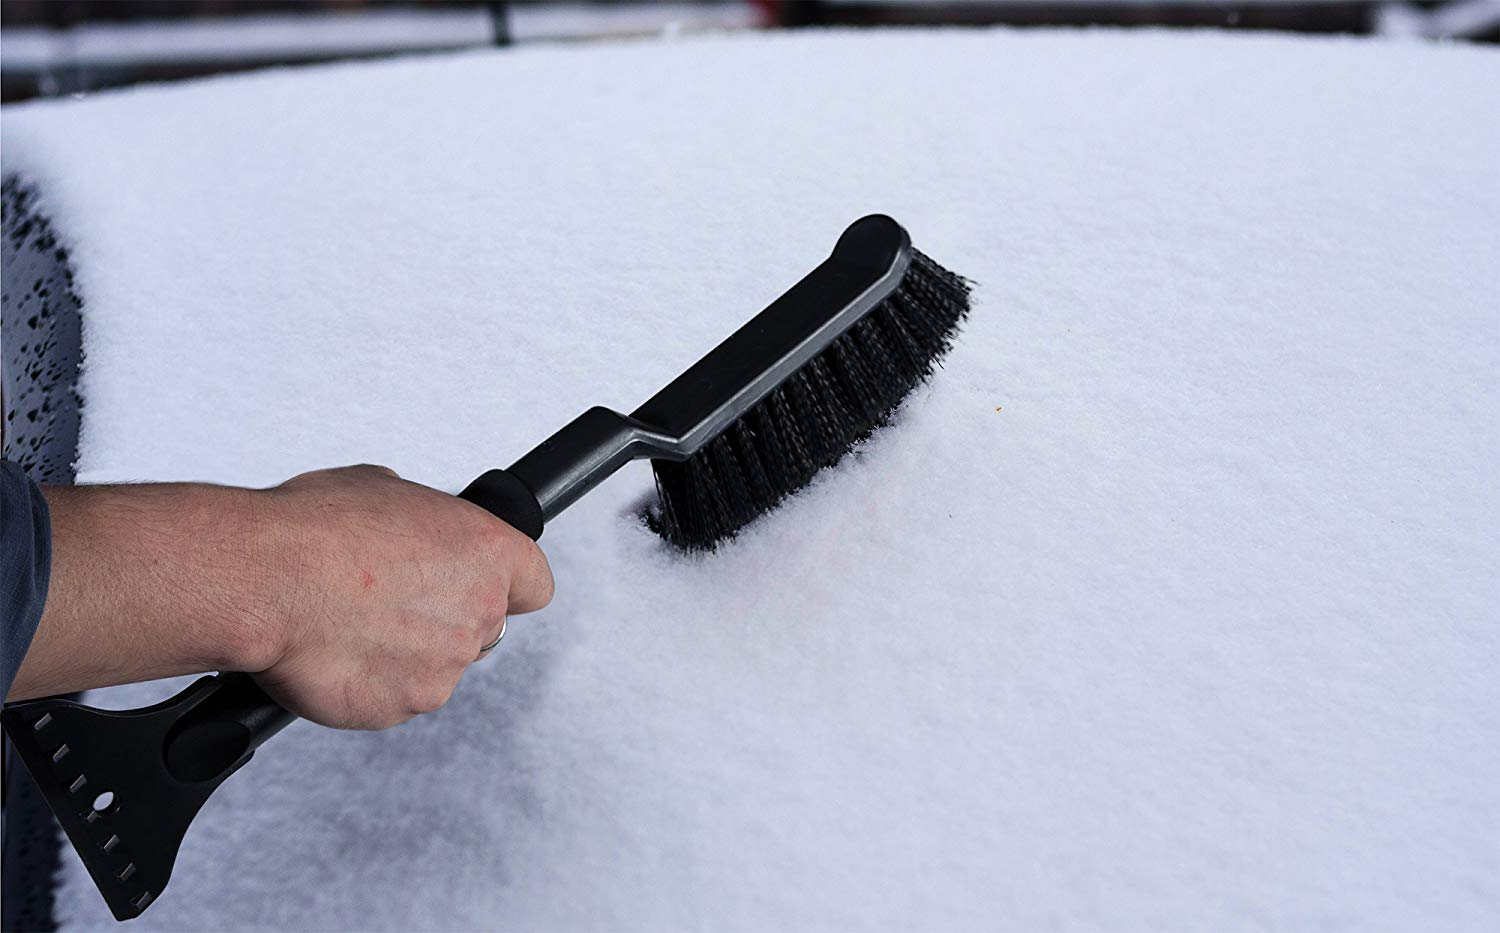 Ice Scraper with Snow Brush 2-in-1 Windshield Removal Tool with Foam Grip - 2 Scraper & Brush Bulk Pack